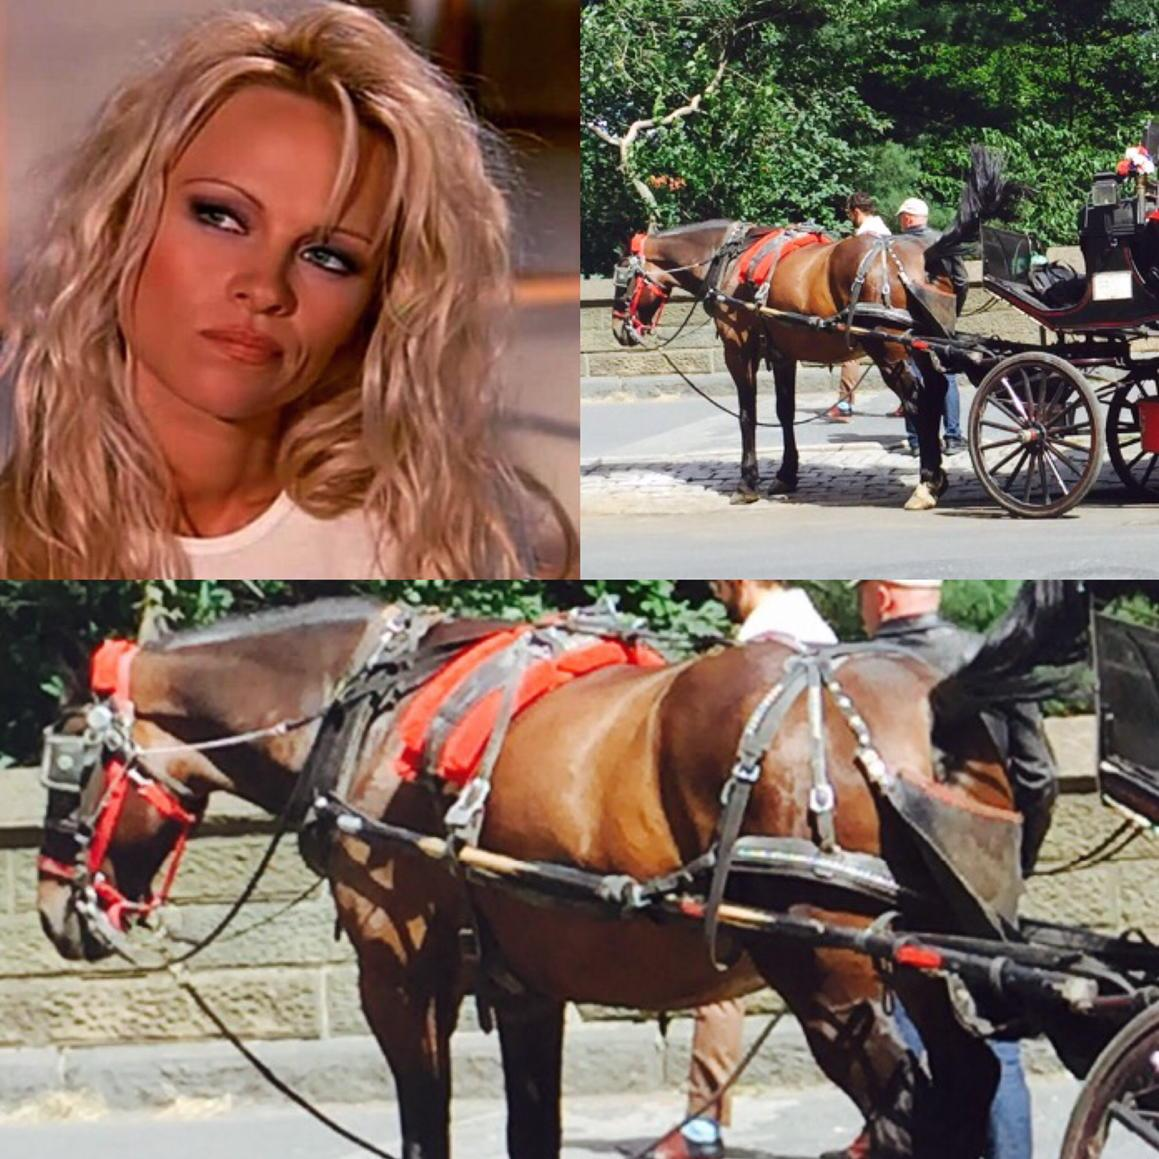 LOVE #NYC, HATE #horsecarriage cruelty! What's the plan to #BanHorseCarriages @deBlasioNYC?! http://t.co/0ke683NBFp